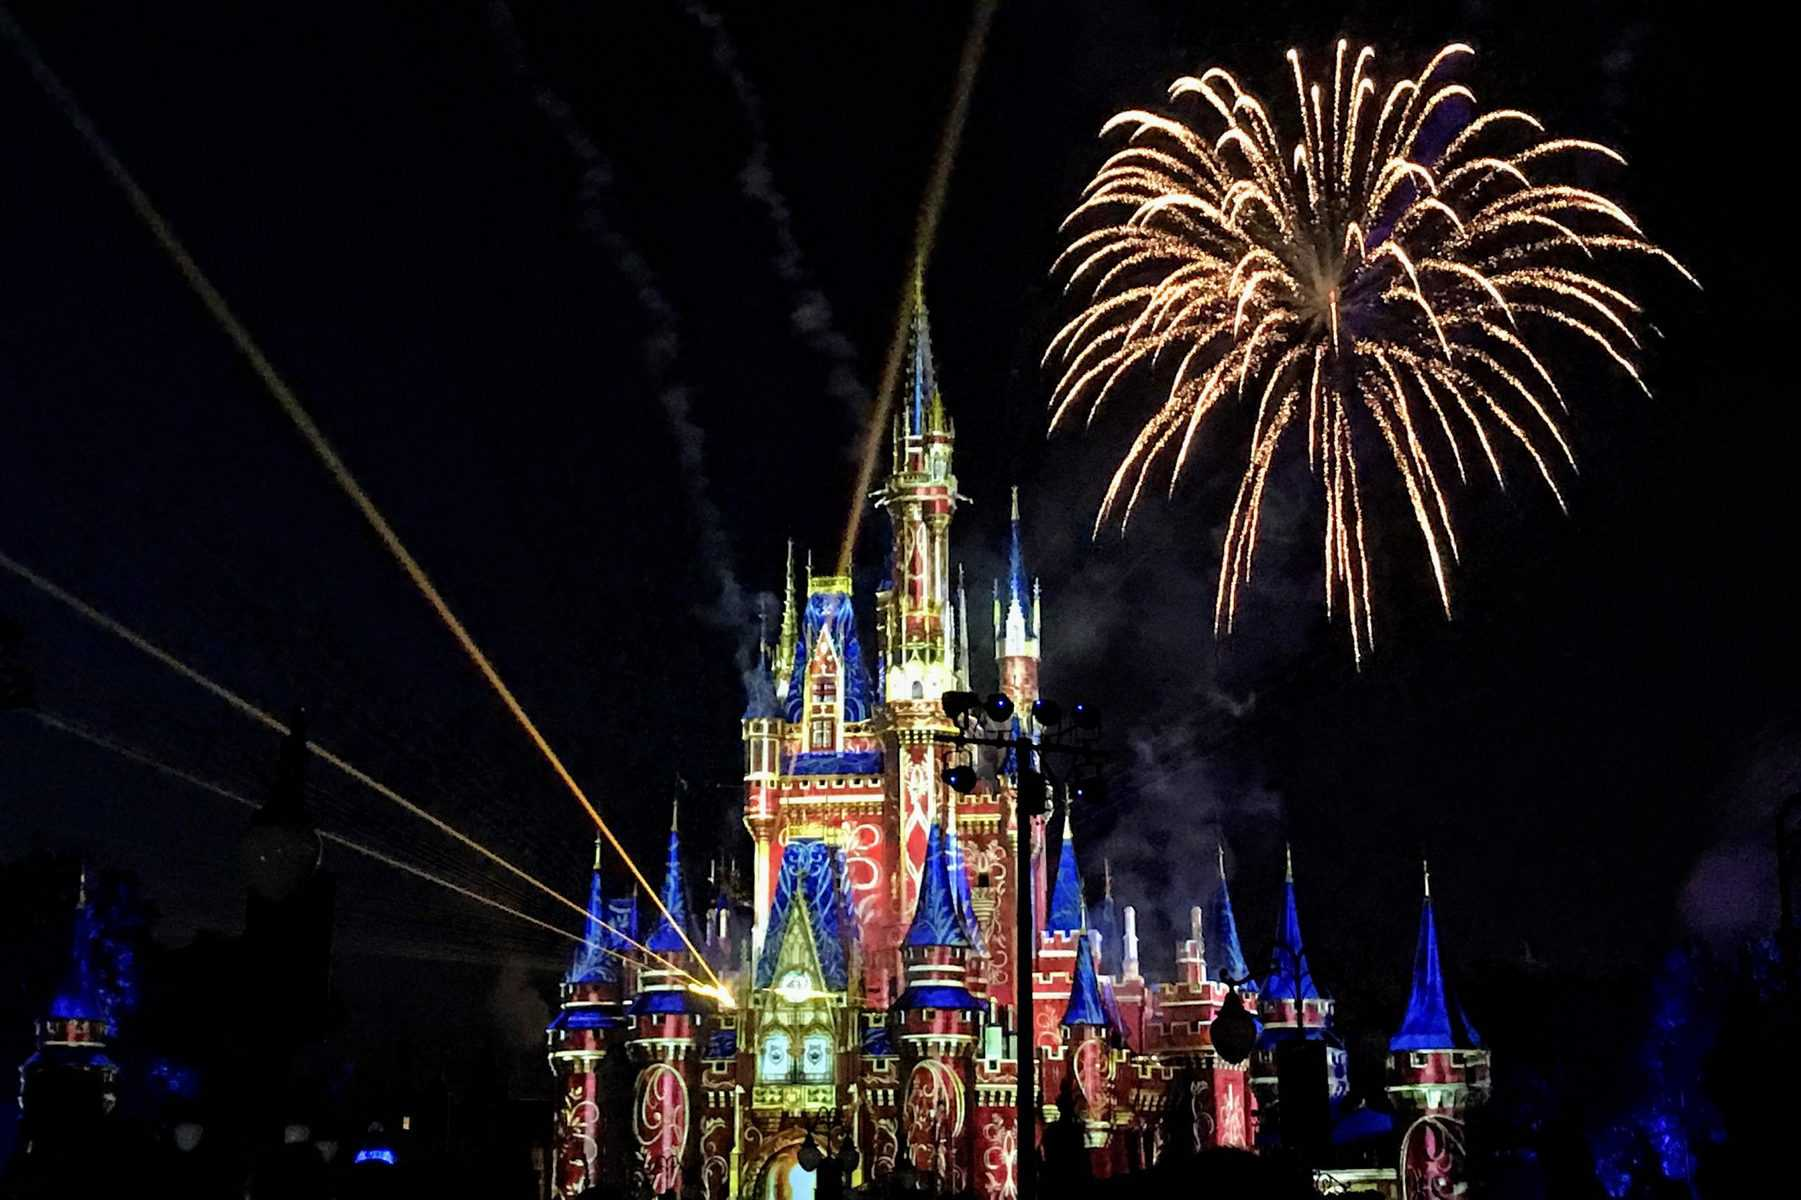 Nighttime fireworks happily ever after